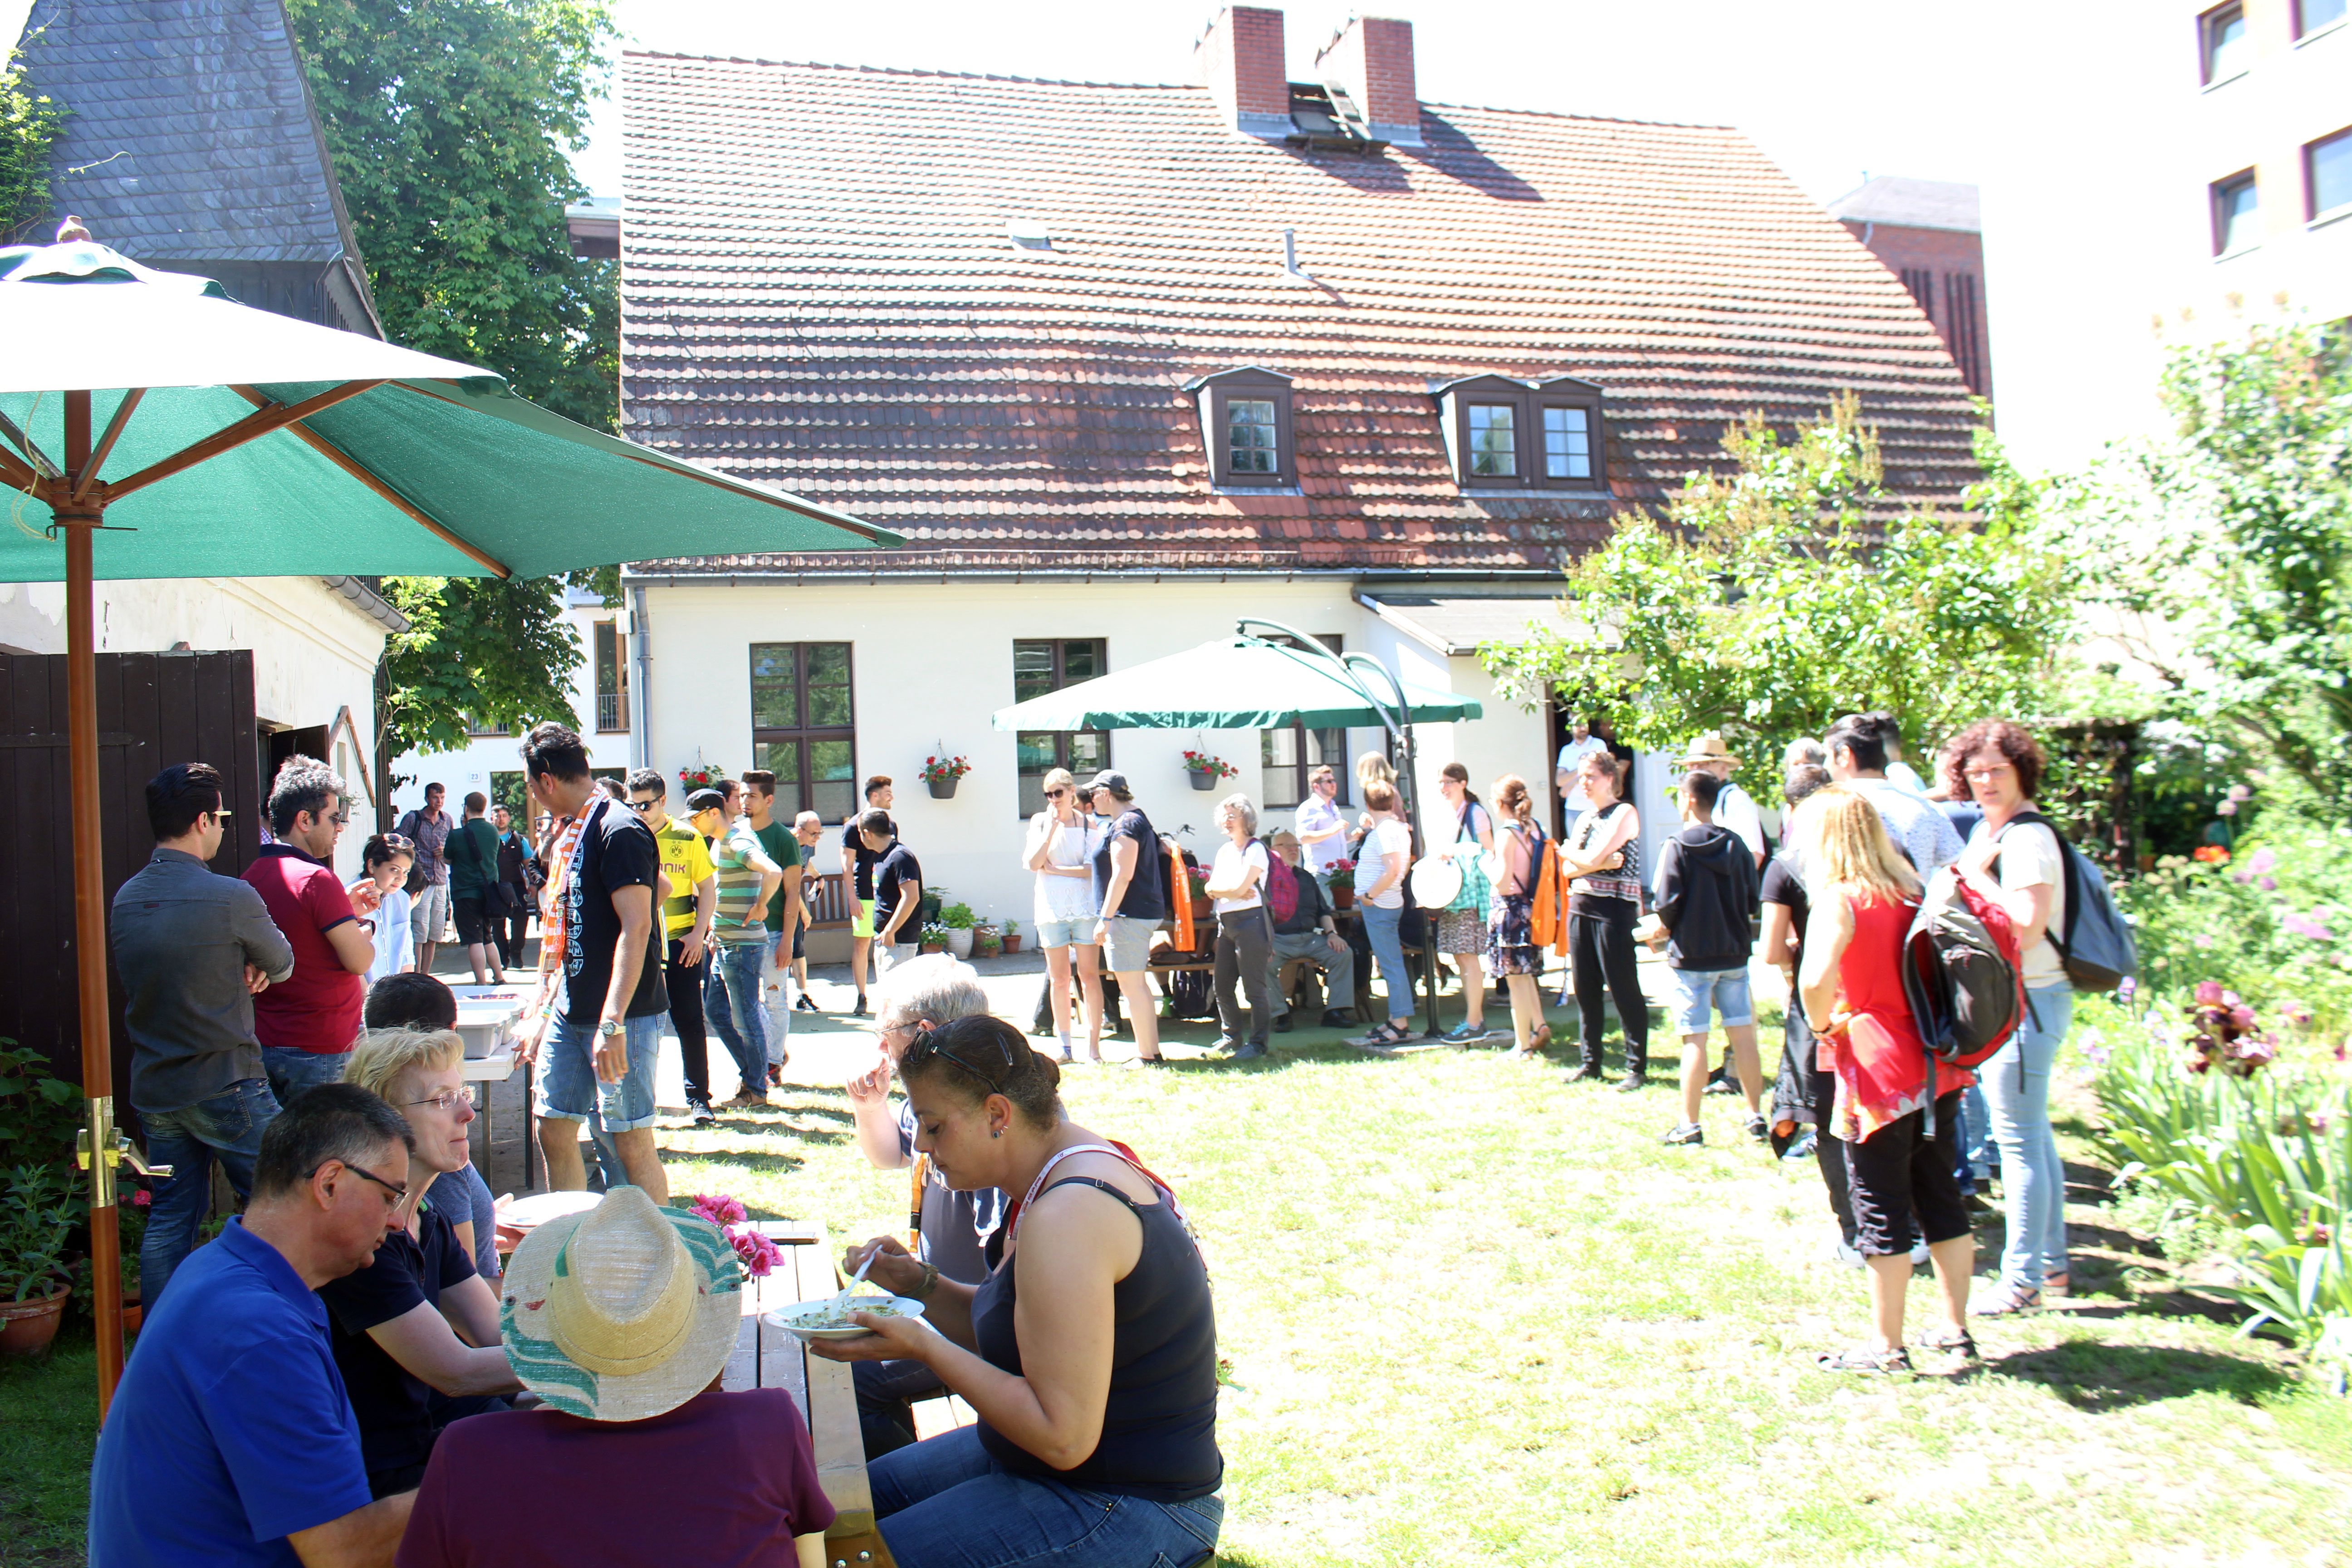 Kirchentag program and lunch in the church garden